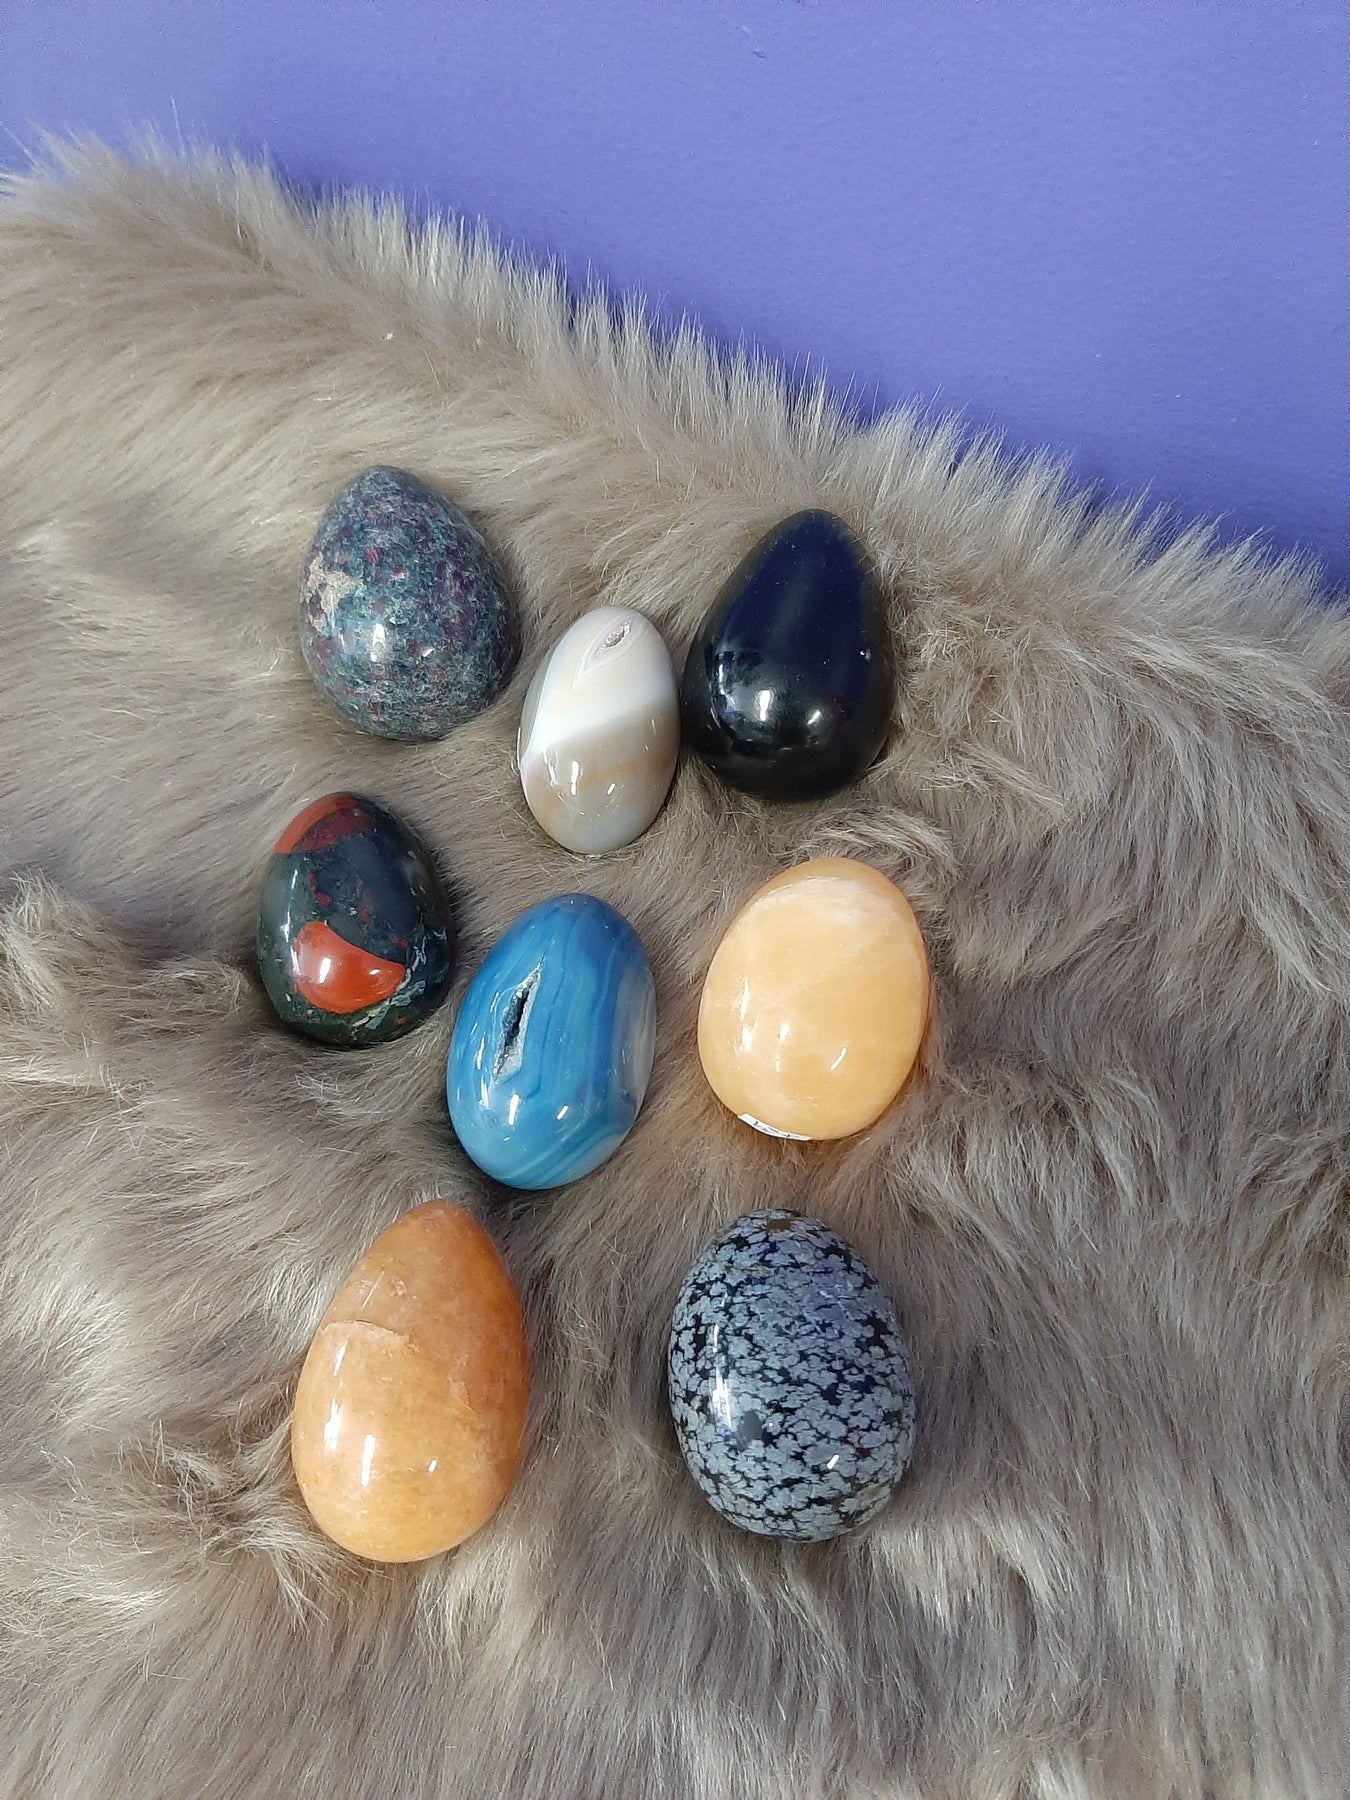 The egg shape of the crystal confine and shape energy. It can be used to detect and rebalance blockages in the body. The shape makes a great hand comforter in times of stress and anxiety.